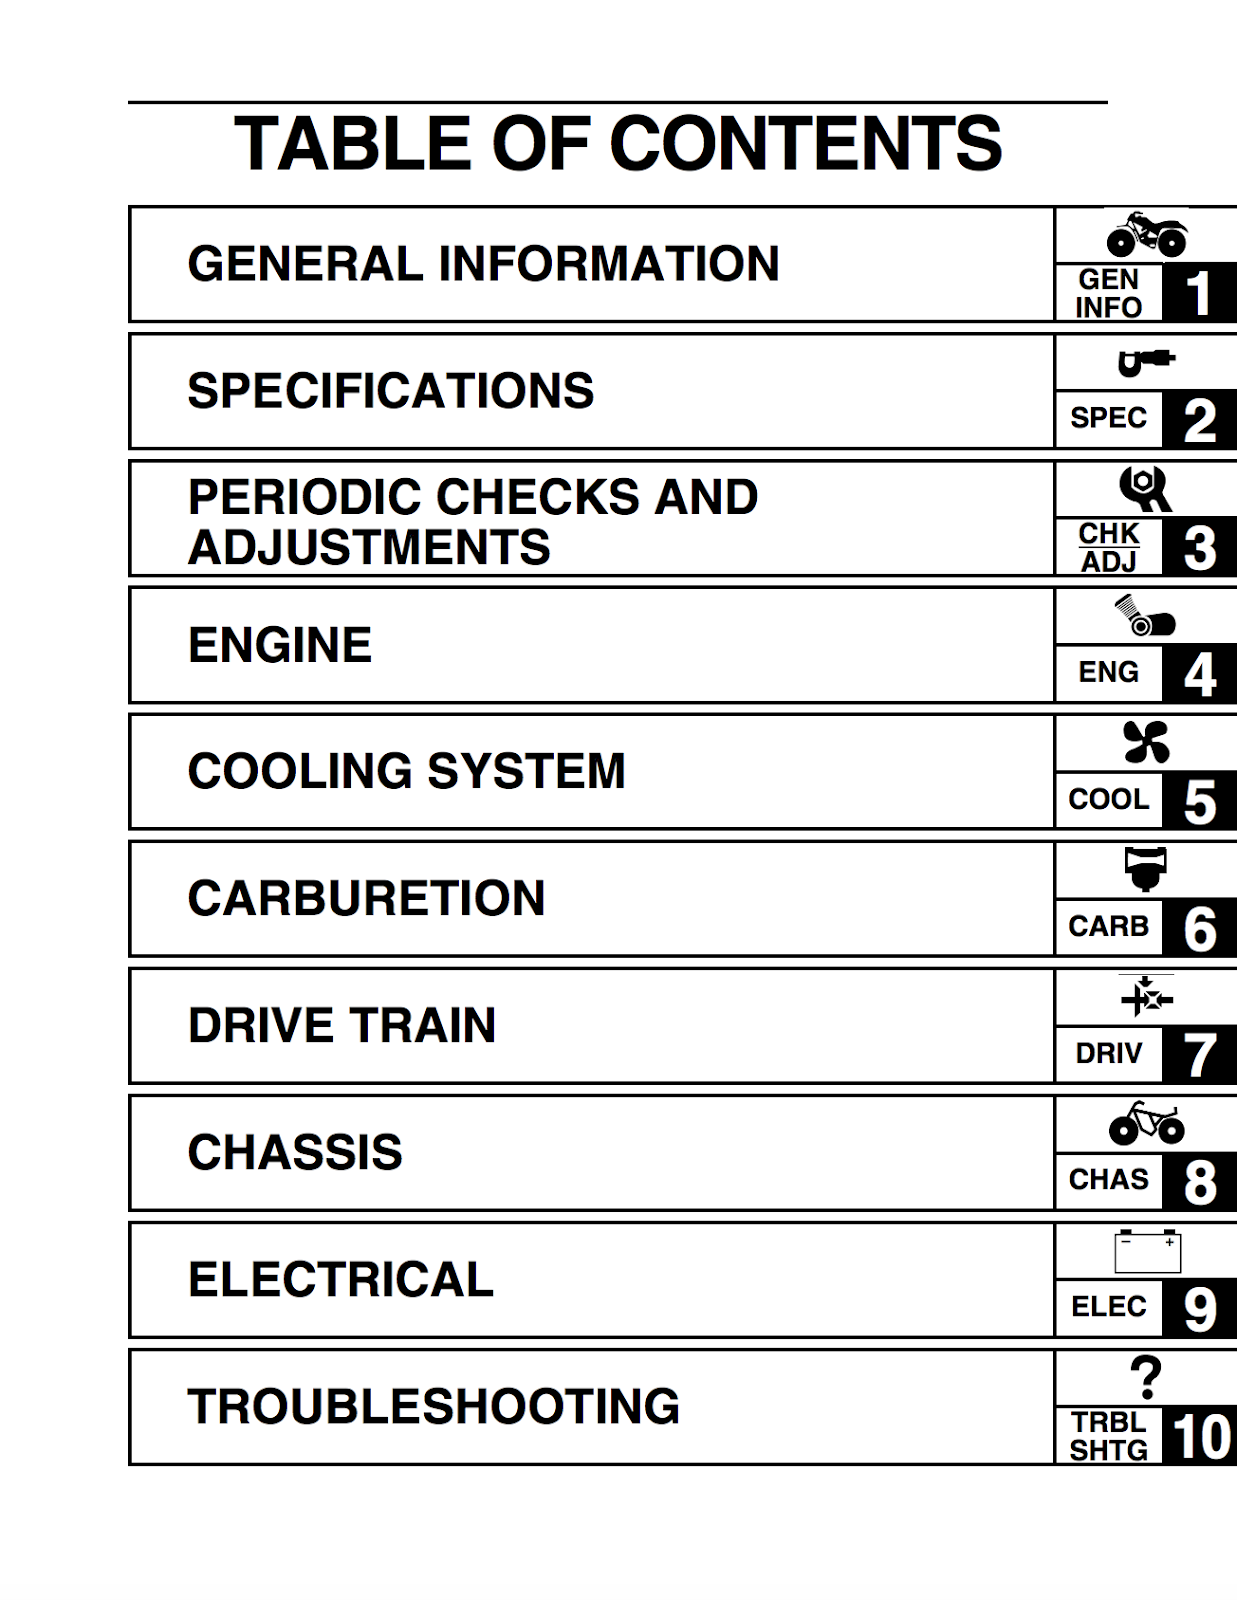 small resolution of table of contents from yamaha kodiak 400 service manual